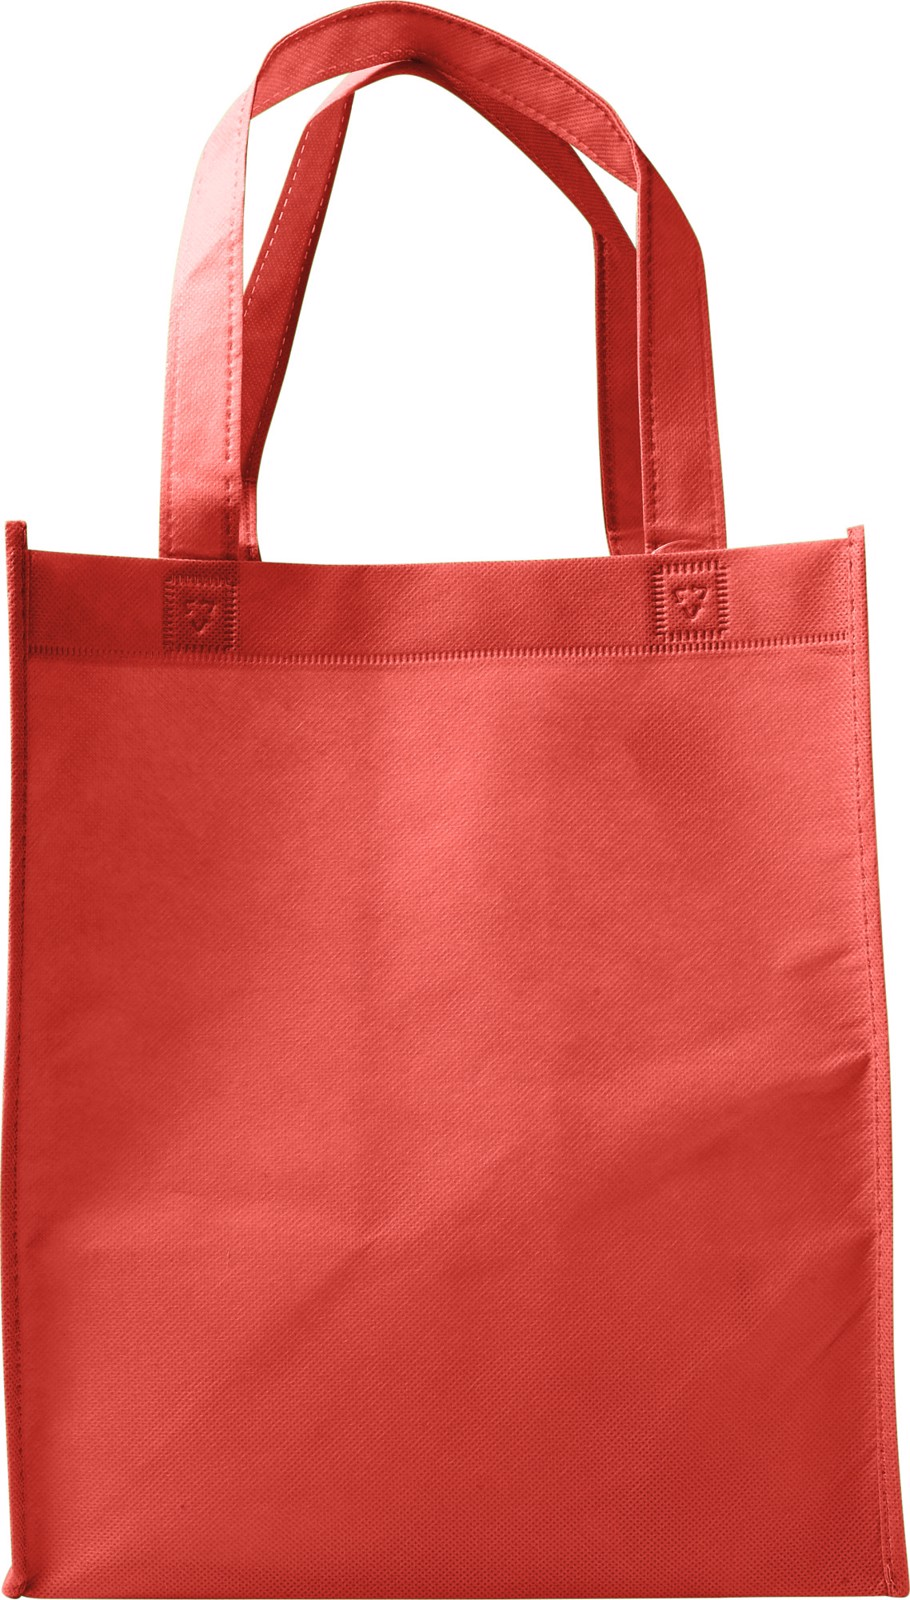 Nonwoven (80 gr/m²) shopping bag. - Red